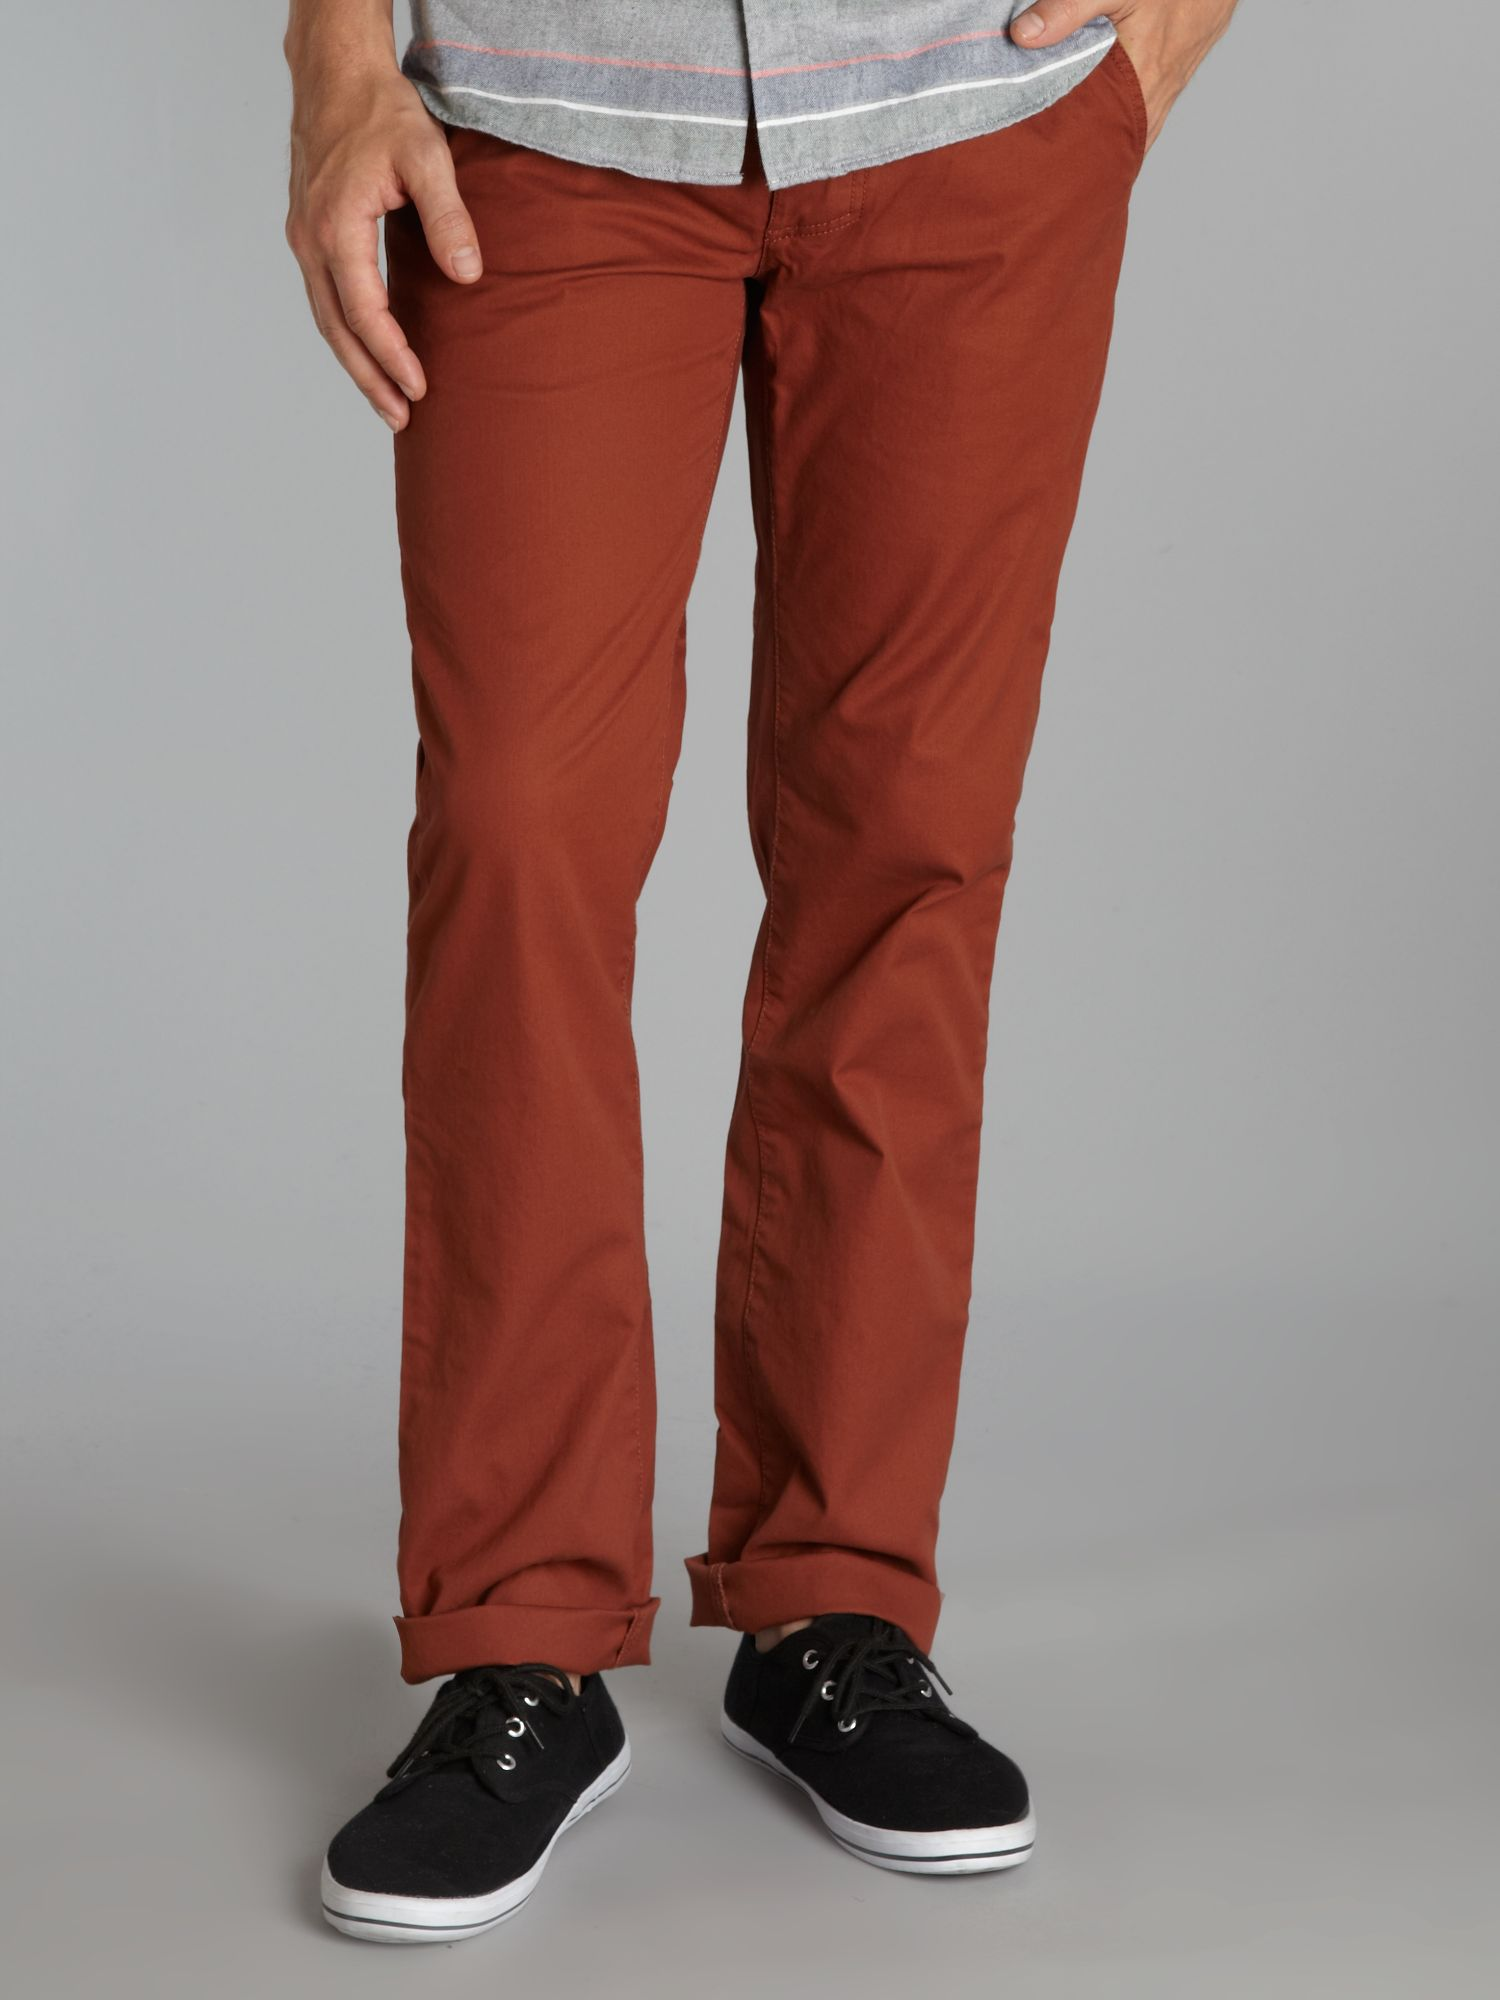 Limited edition washed canvas slim leg chino